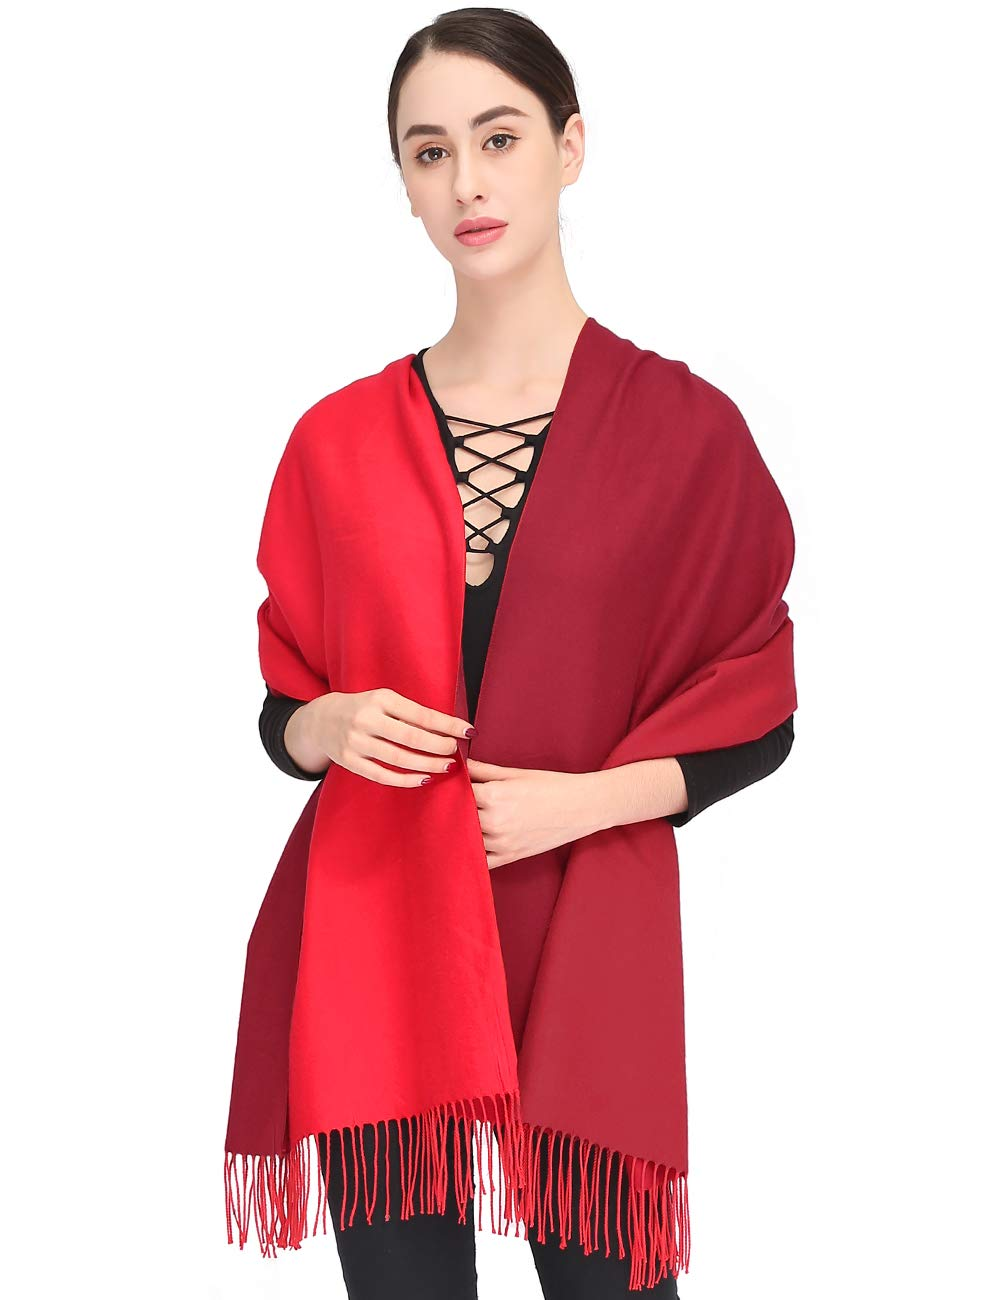 Pashmina Shawls and Wraps Elegant Cashmere Scarfs for Women Stylish Warm Blanket Solid Winter Scarves with Gift Box 78.5''x27.5'' (Red, Box)